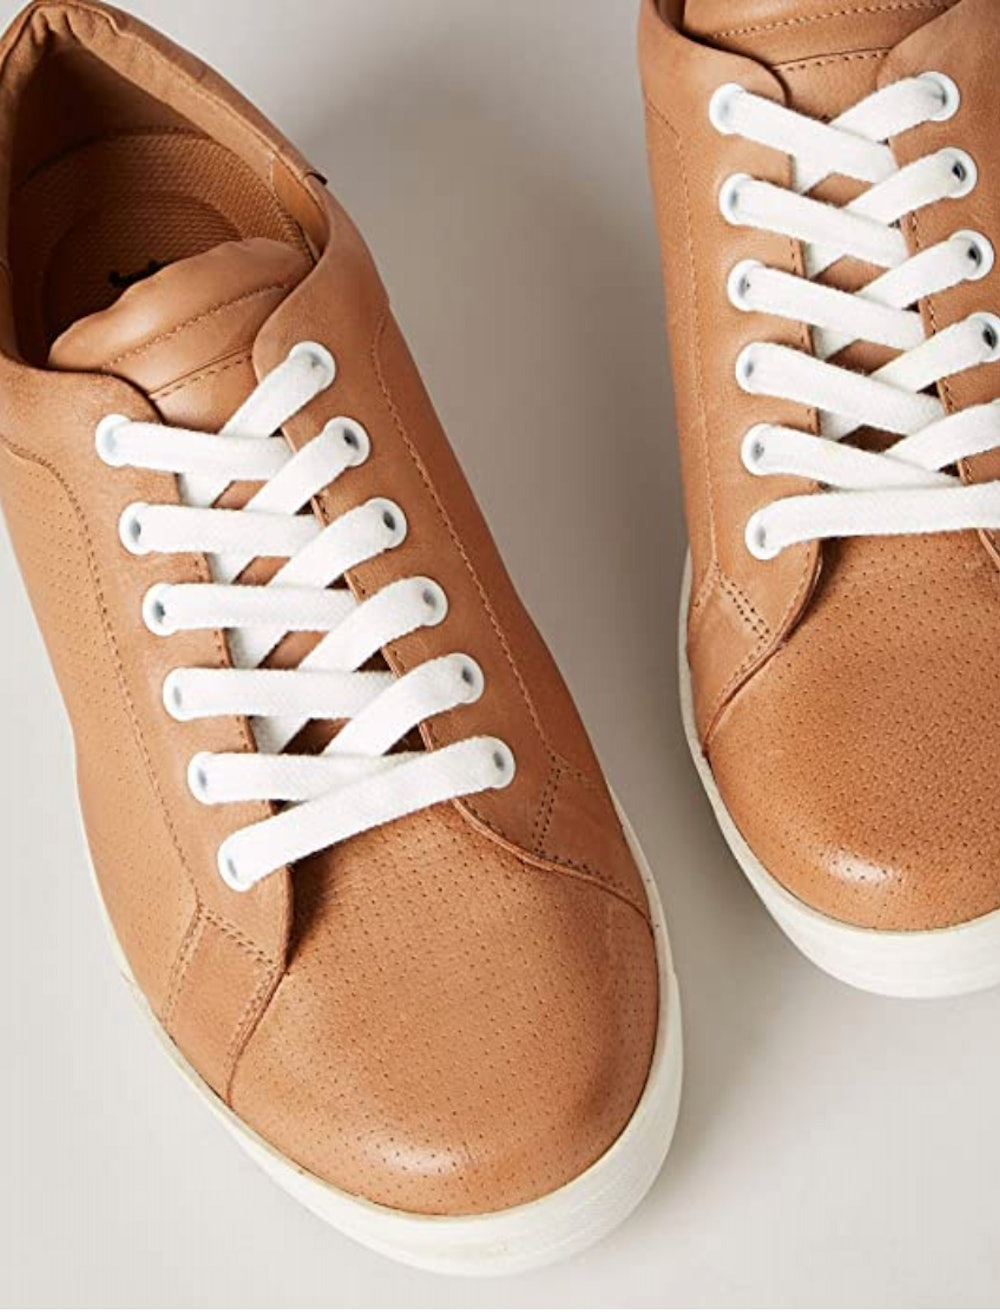 find. Women's Leather Low-Top Sneakers